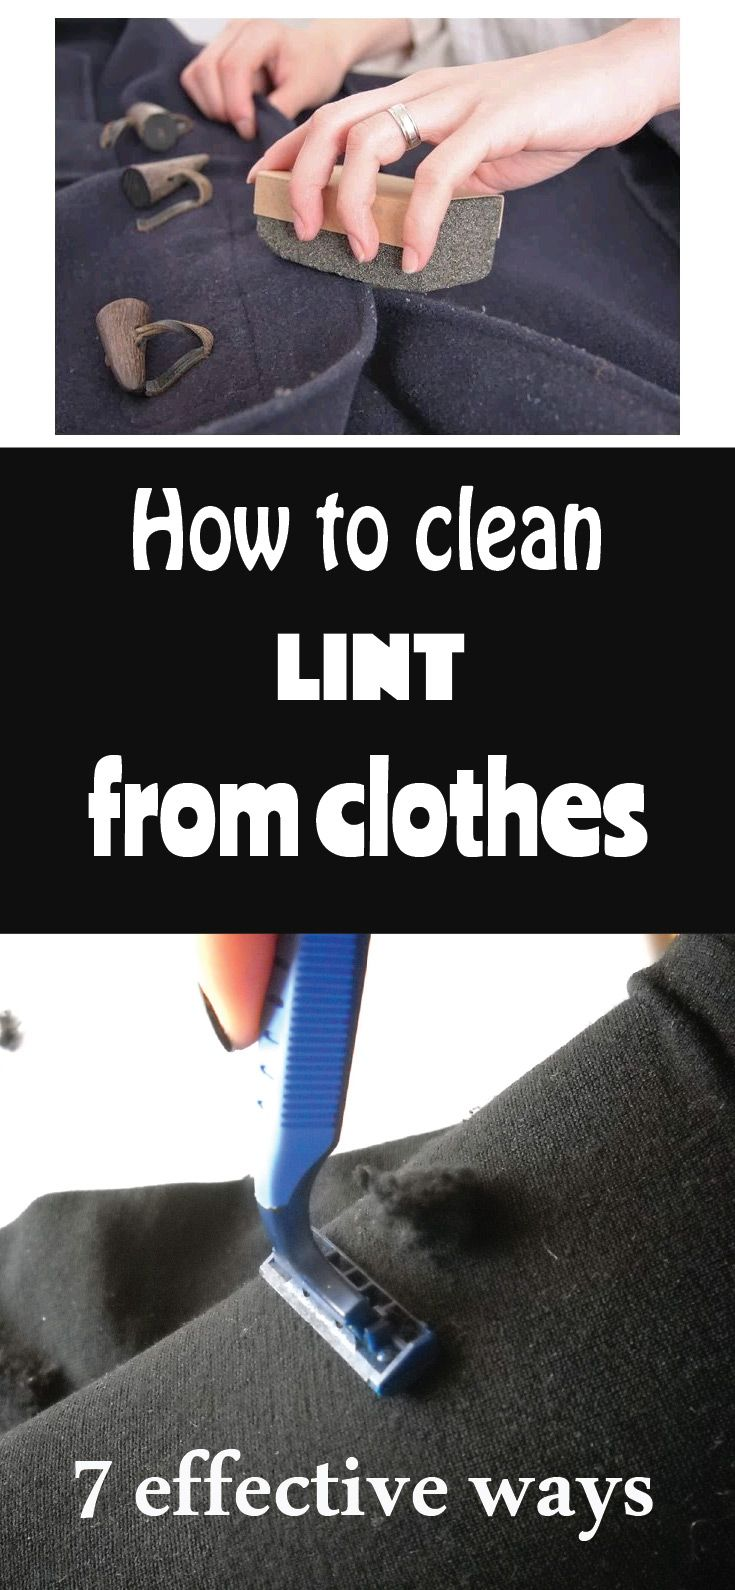 How to clean lint from clothes 7 effective ways Remove